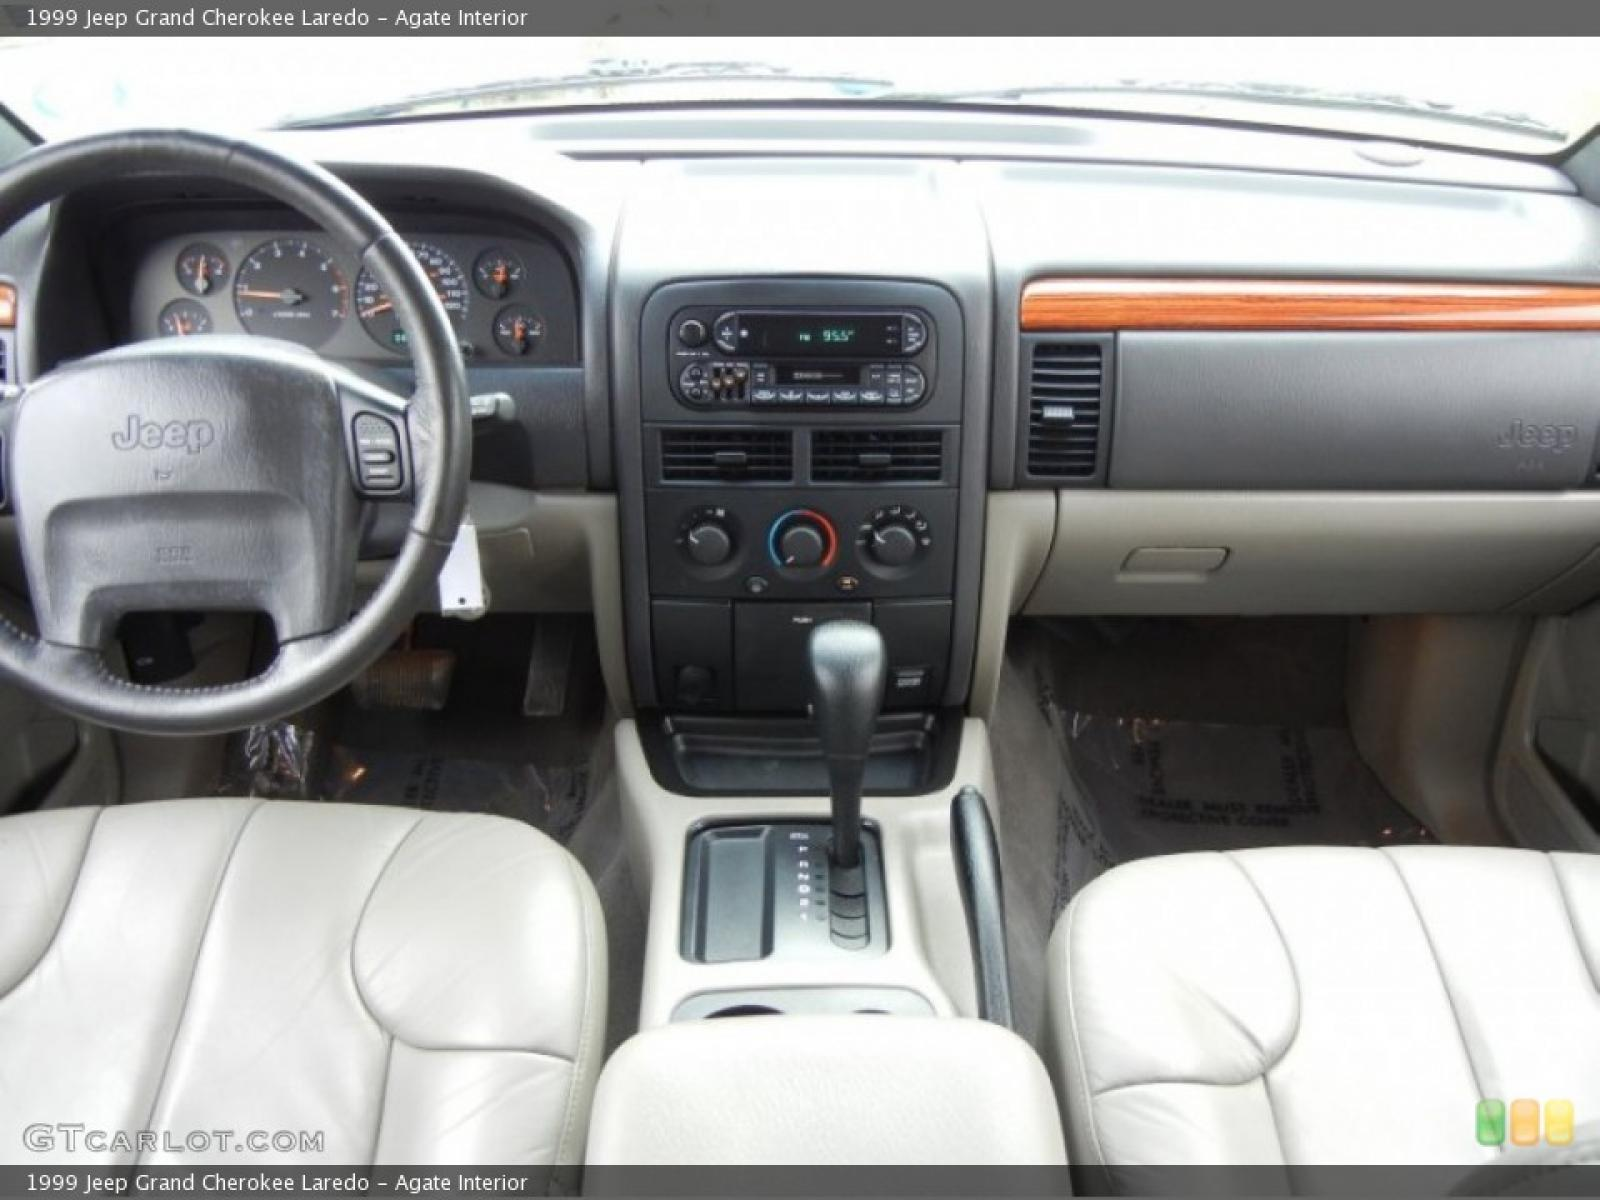 800 1024 1280 1600 Origin 1999 Jeep Grand Cherokee ...